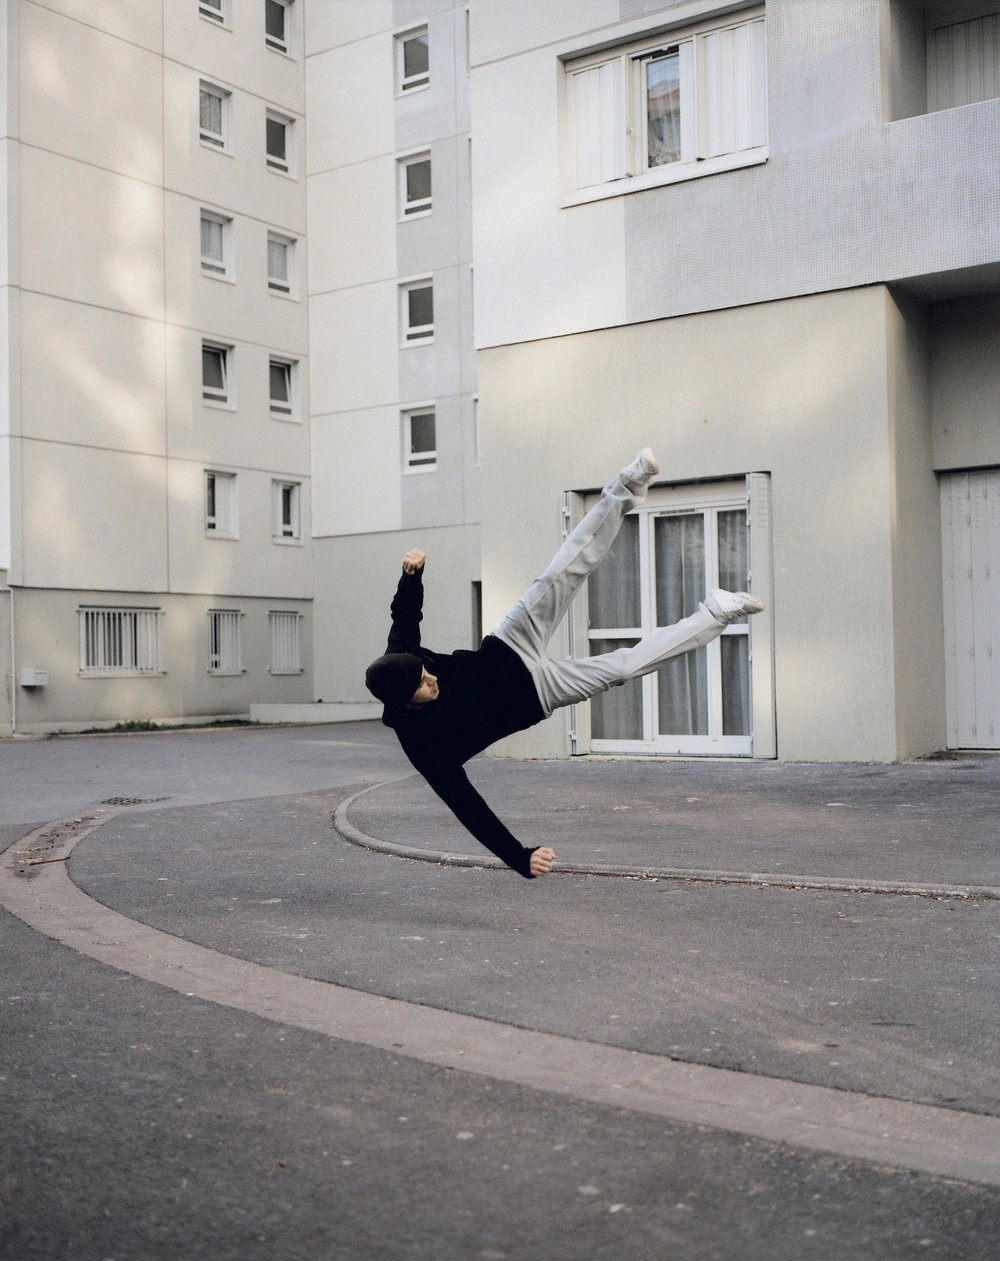 Denis Darzacq,  La Chute No. 2 , 2006  Digital C-print, 85 x 105 cm (approx. 33 x 41 in), edition of 8   Inquire